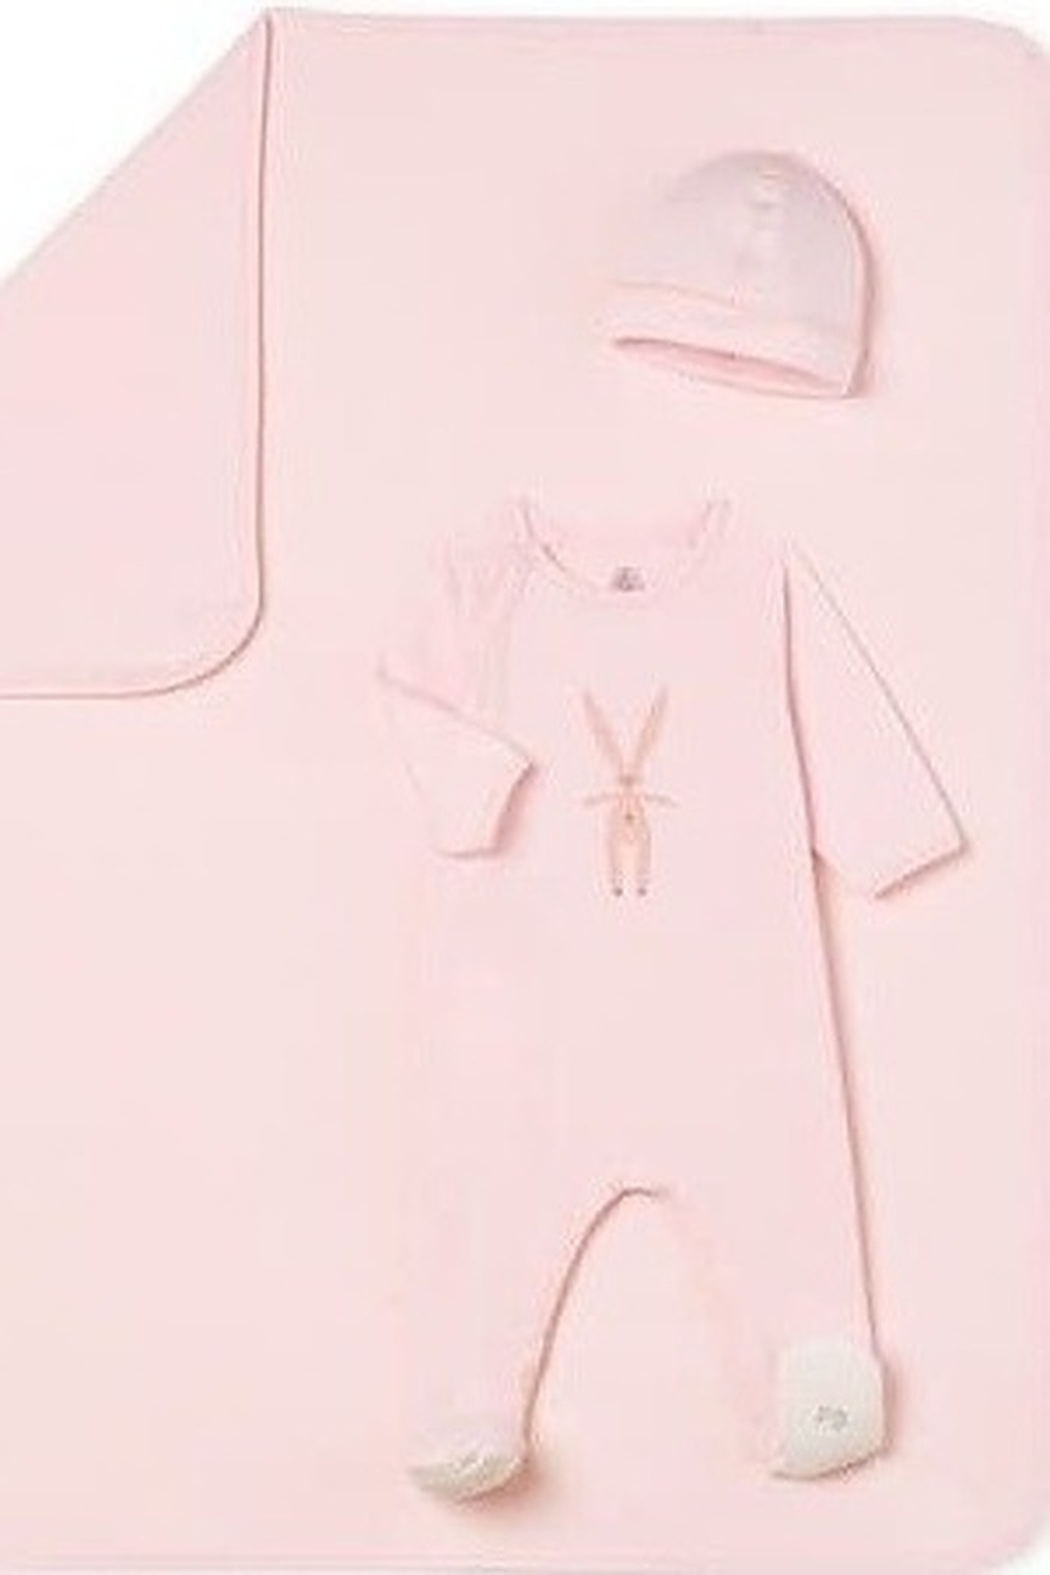 Petit Bateau Infant Footed Pajamas for Girls and Boys with Bunnies   Little Loungers - Main Image